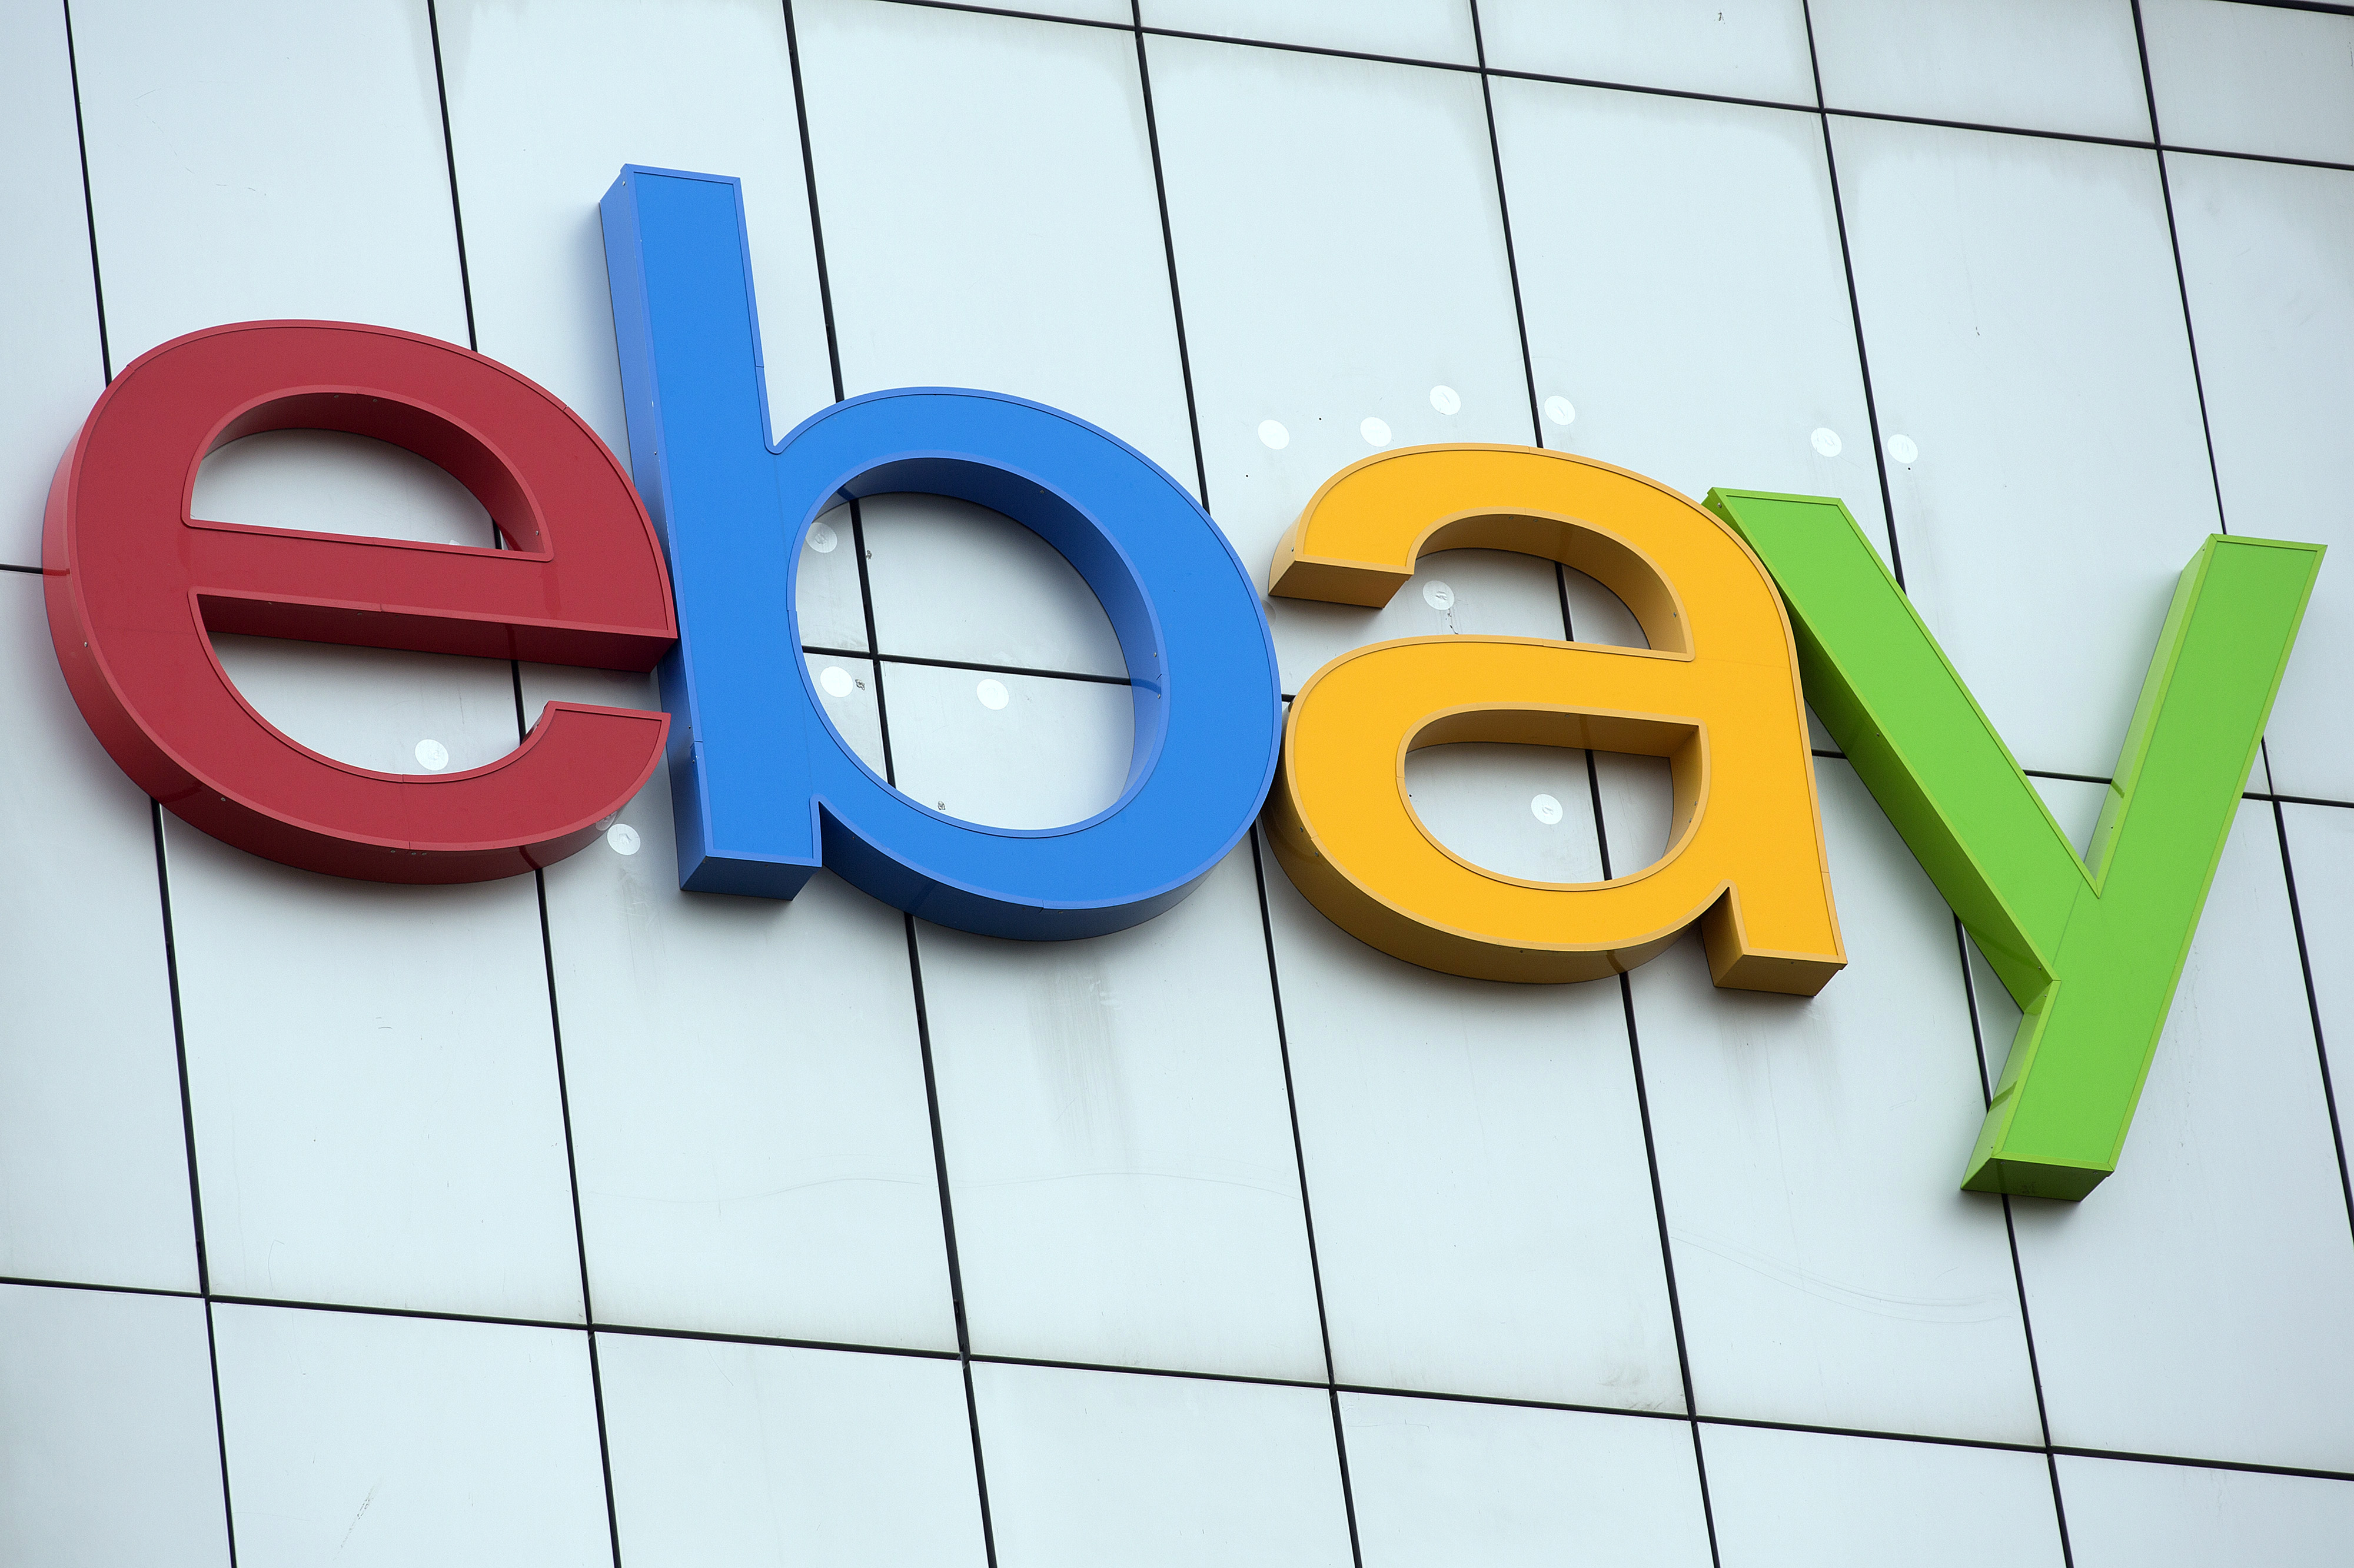 The EBay logo is seen on display on the exterior of EBay Inc.'s European headquarters at Blanchardstown in Dublin, Ireland, on Friday, March 15, 2013.